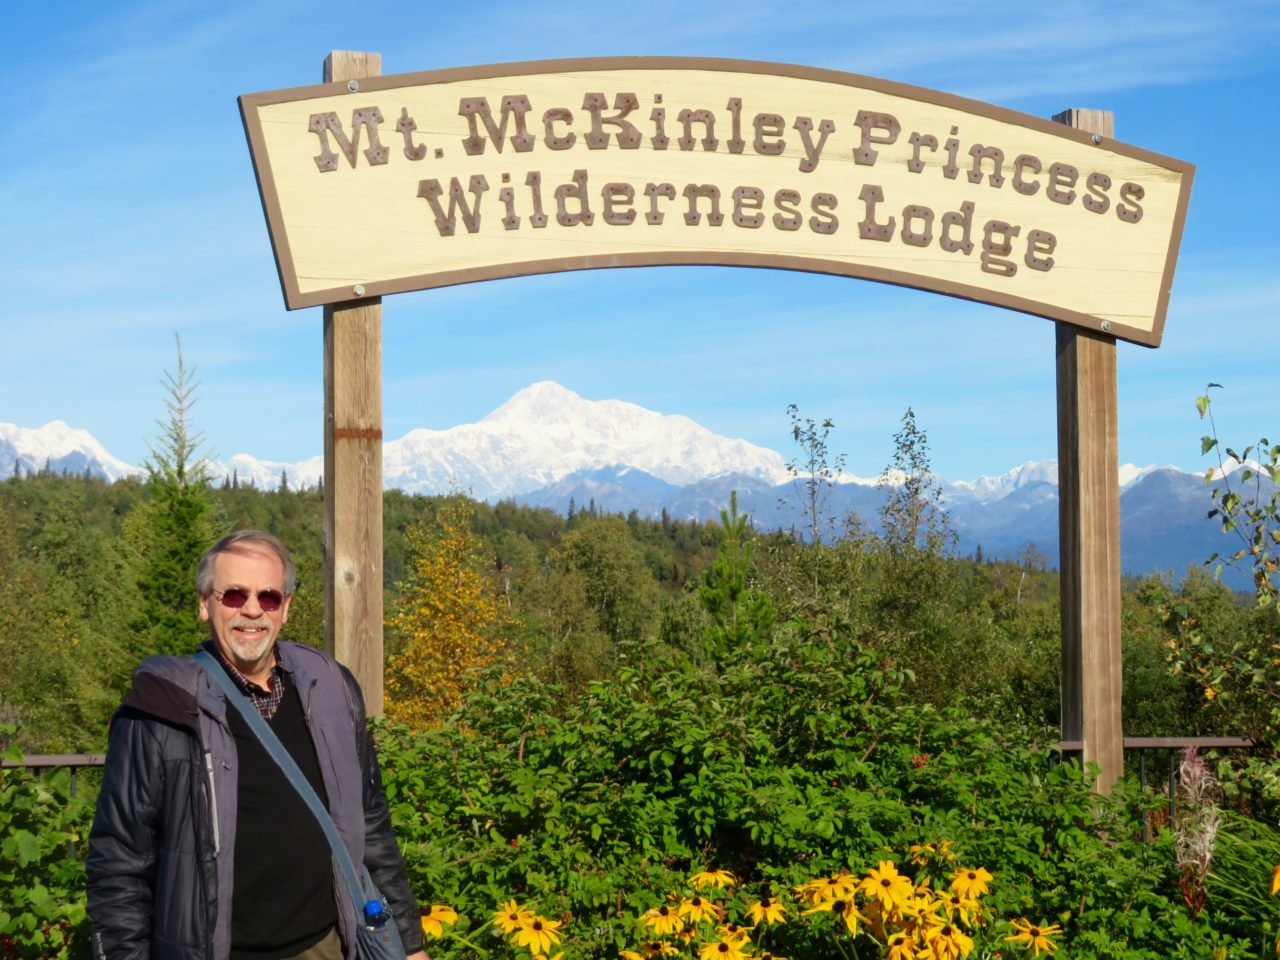 Mt. McKinley Princess Wilderness Lodge ~ Alaska Cruise Tour